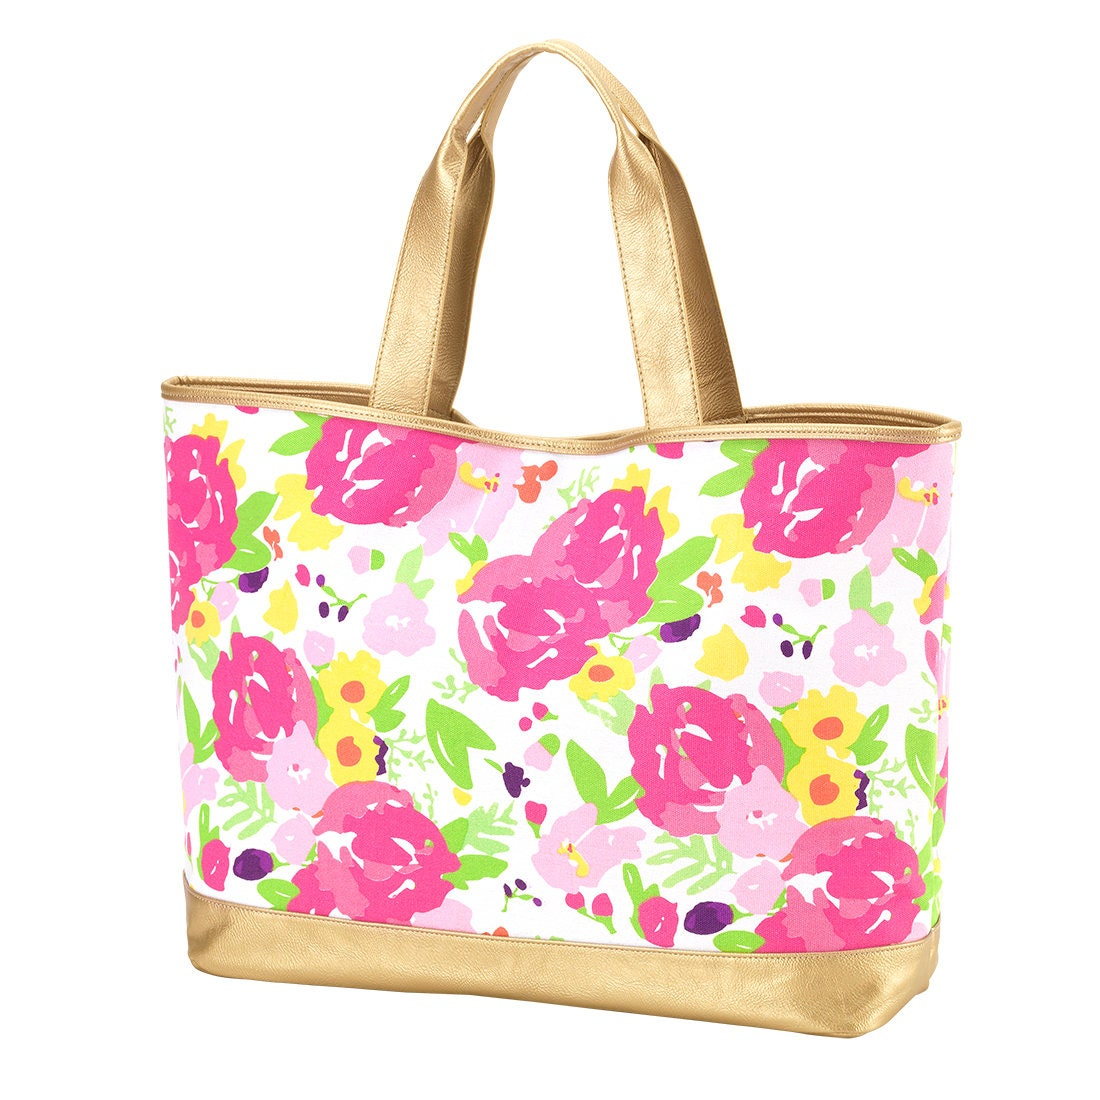 Spring Beach Bag Tote Bags Vacation Overnight Wedding